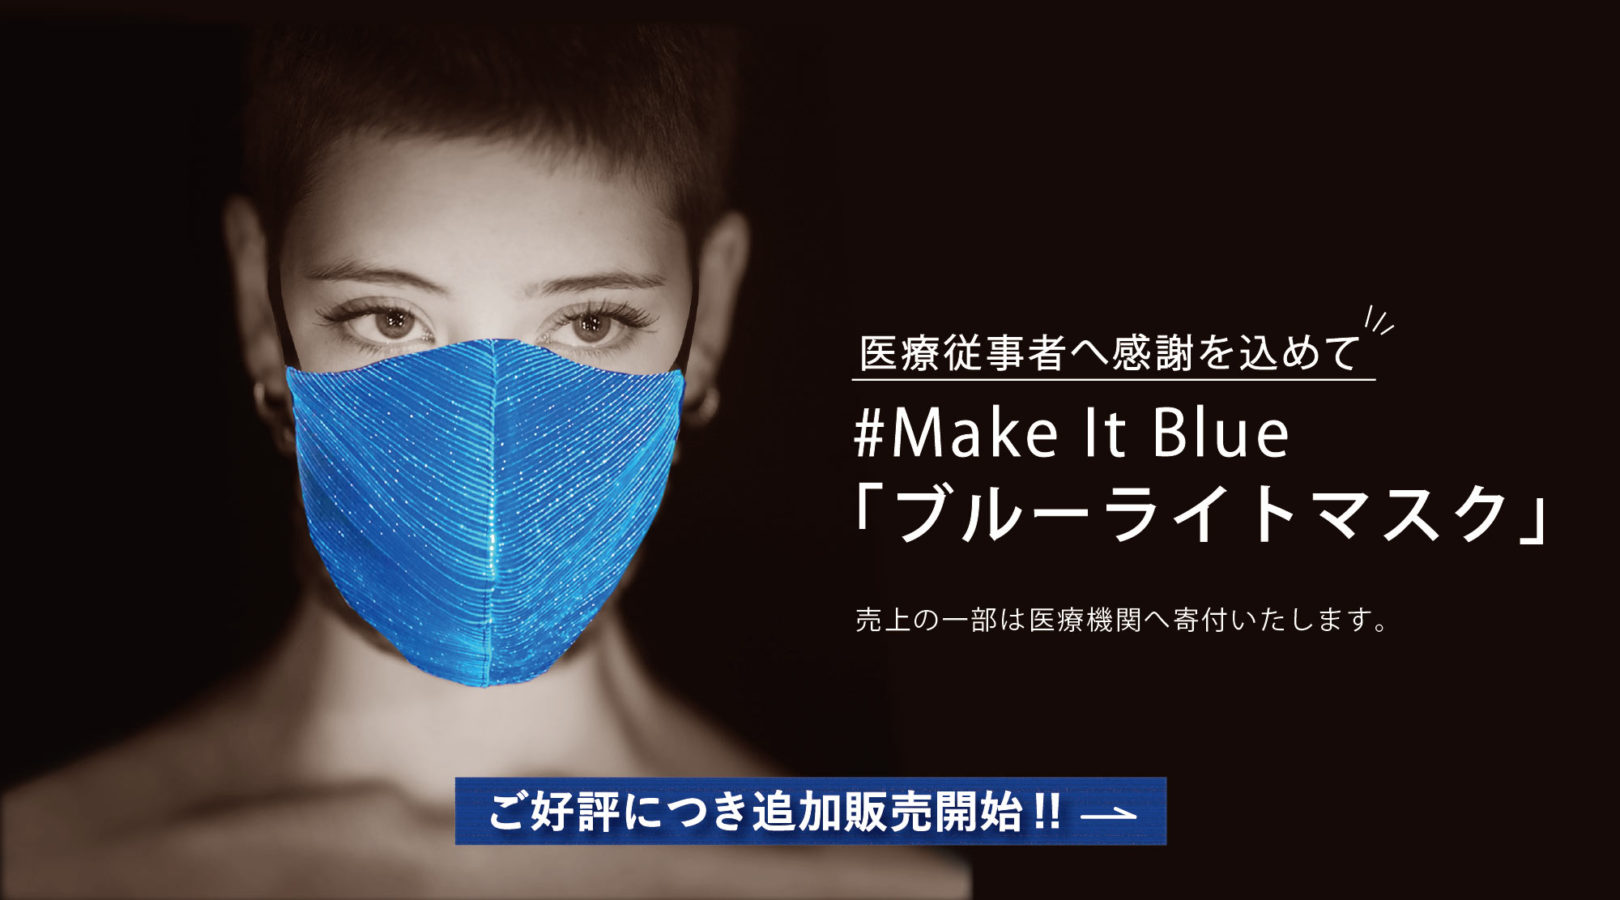 bluelightmask-slide02